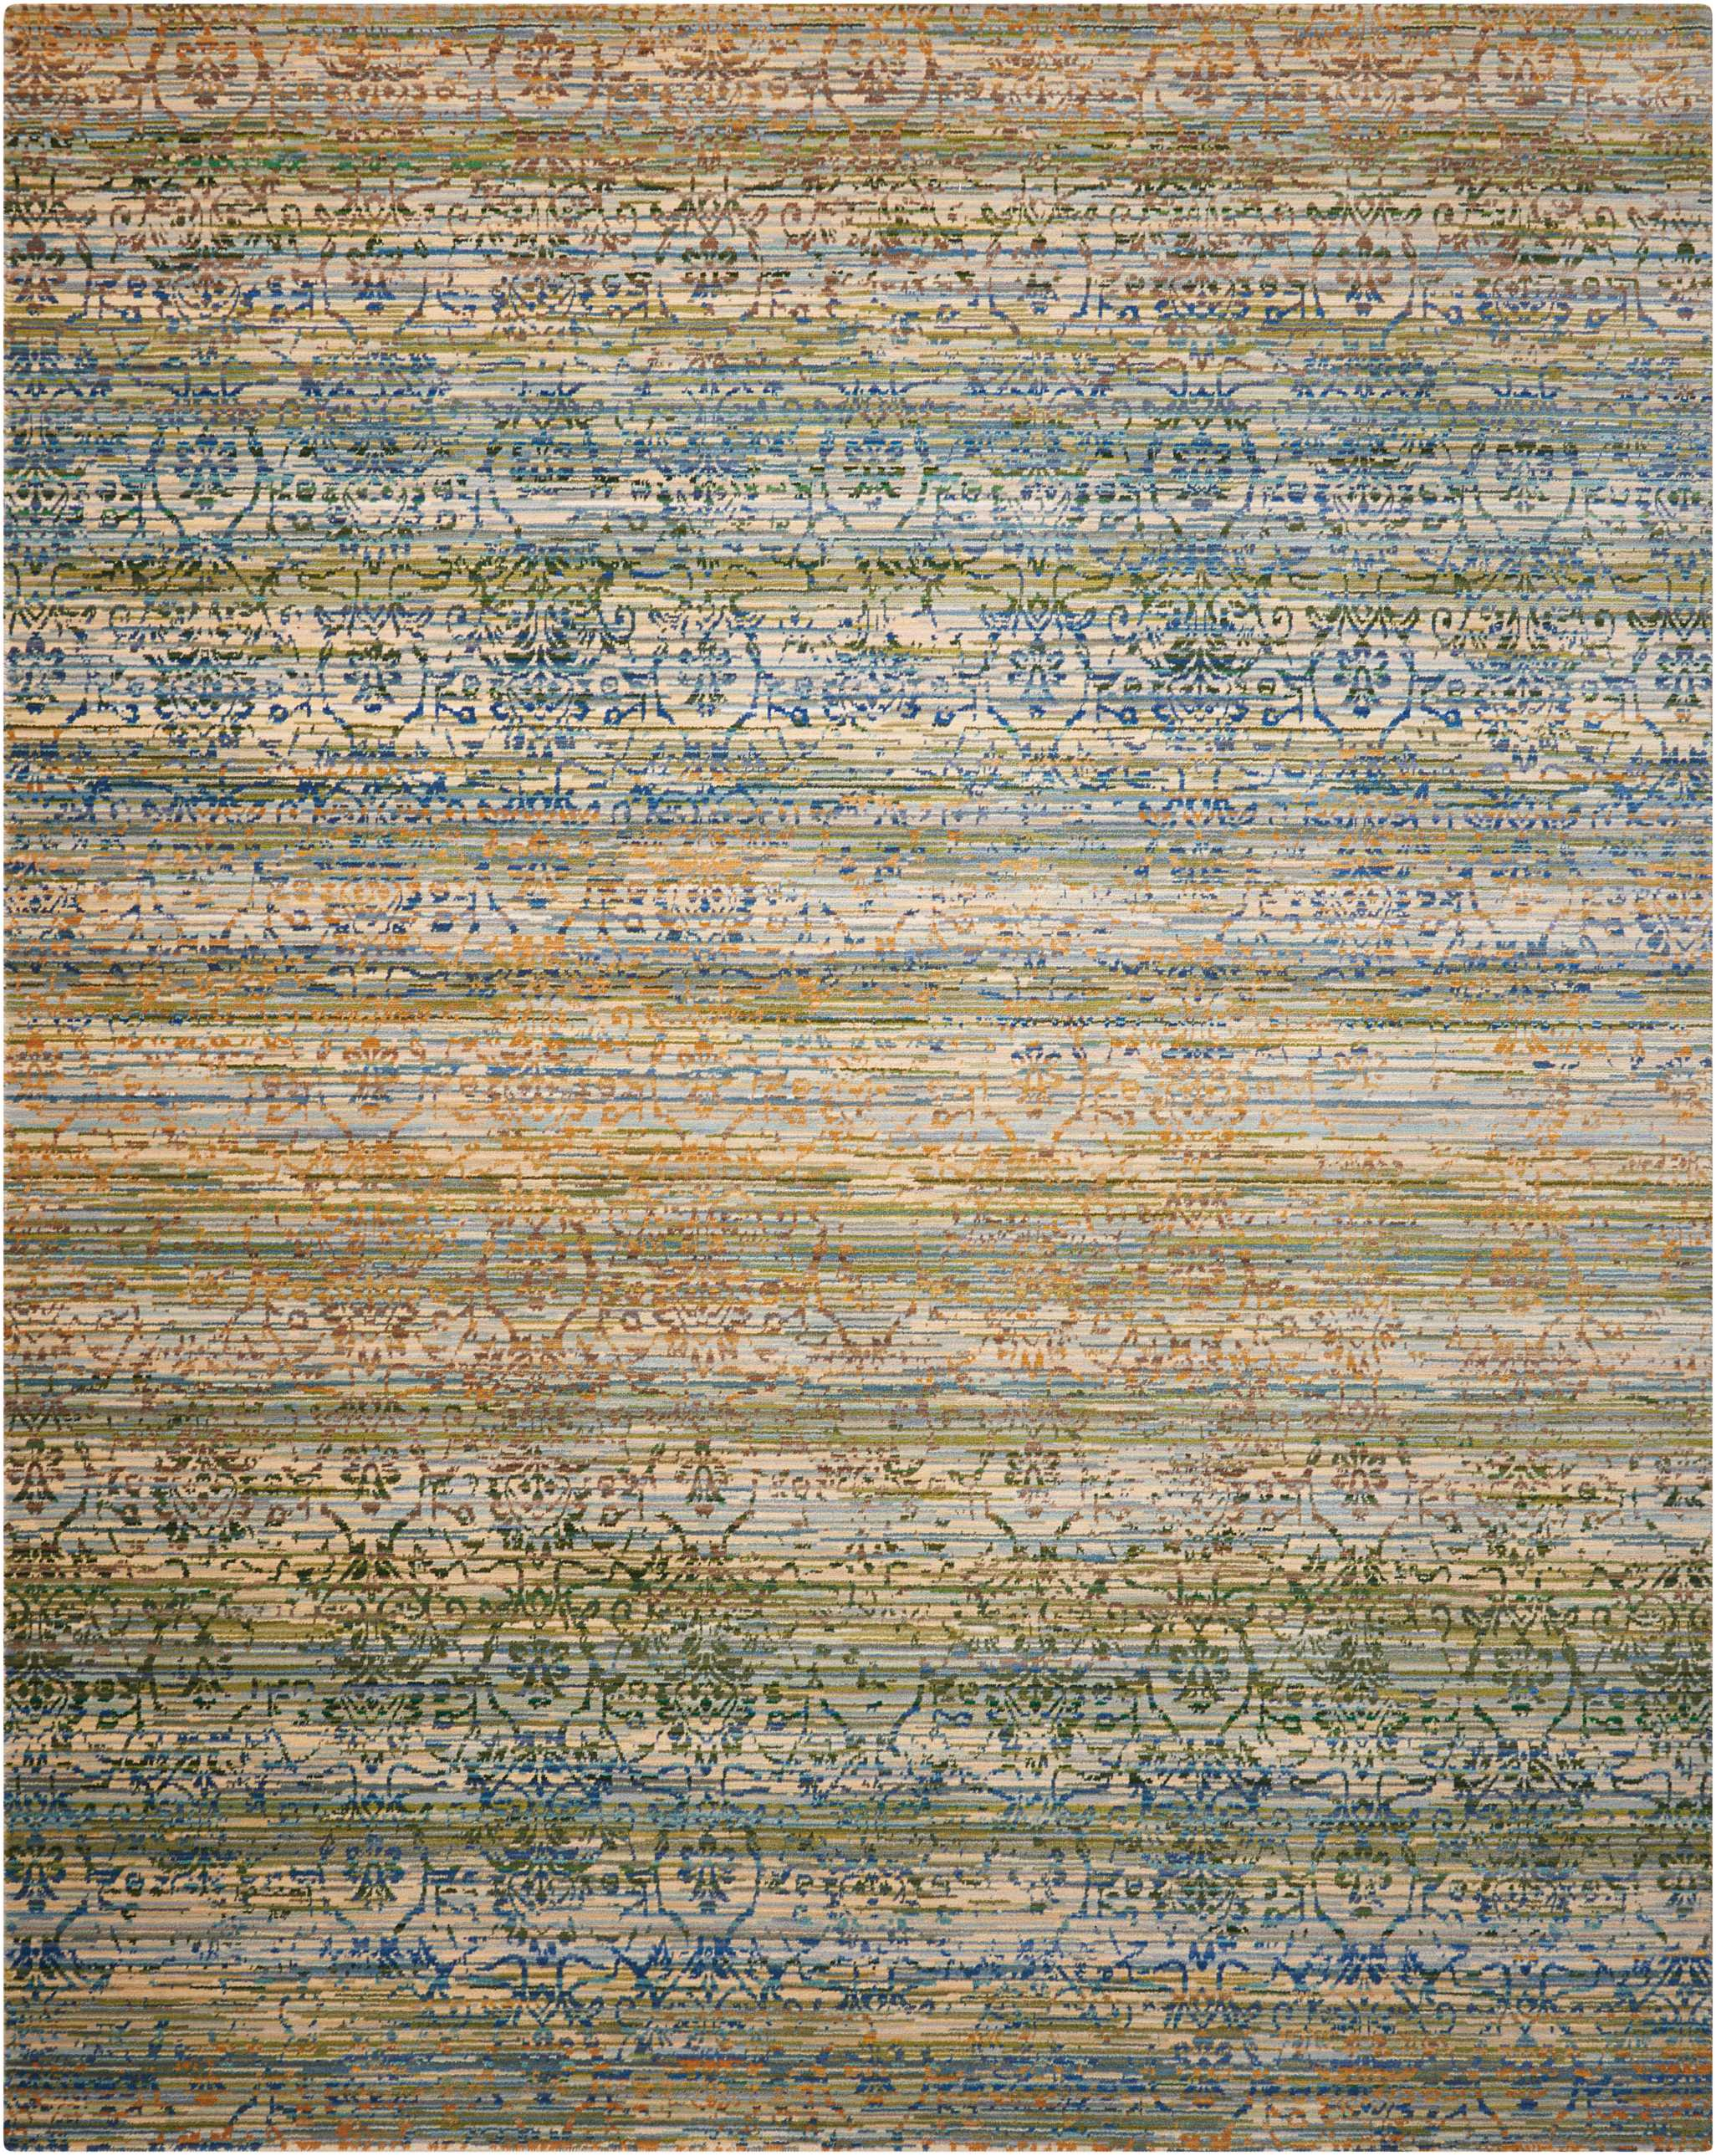 Nourison Rhapsody RH003 Area Rug - Flooring Mats and Turf